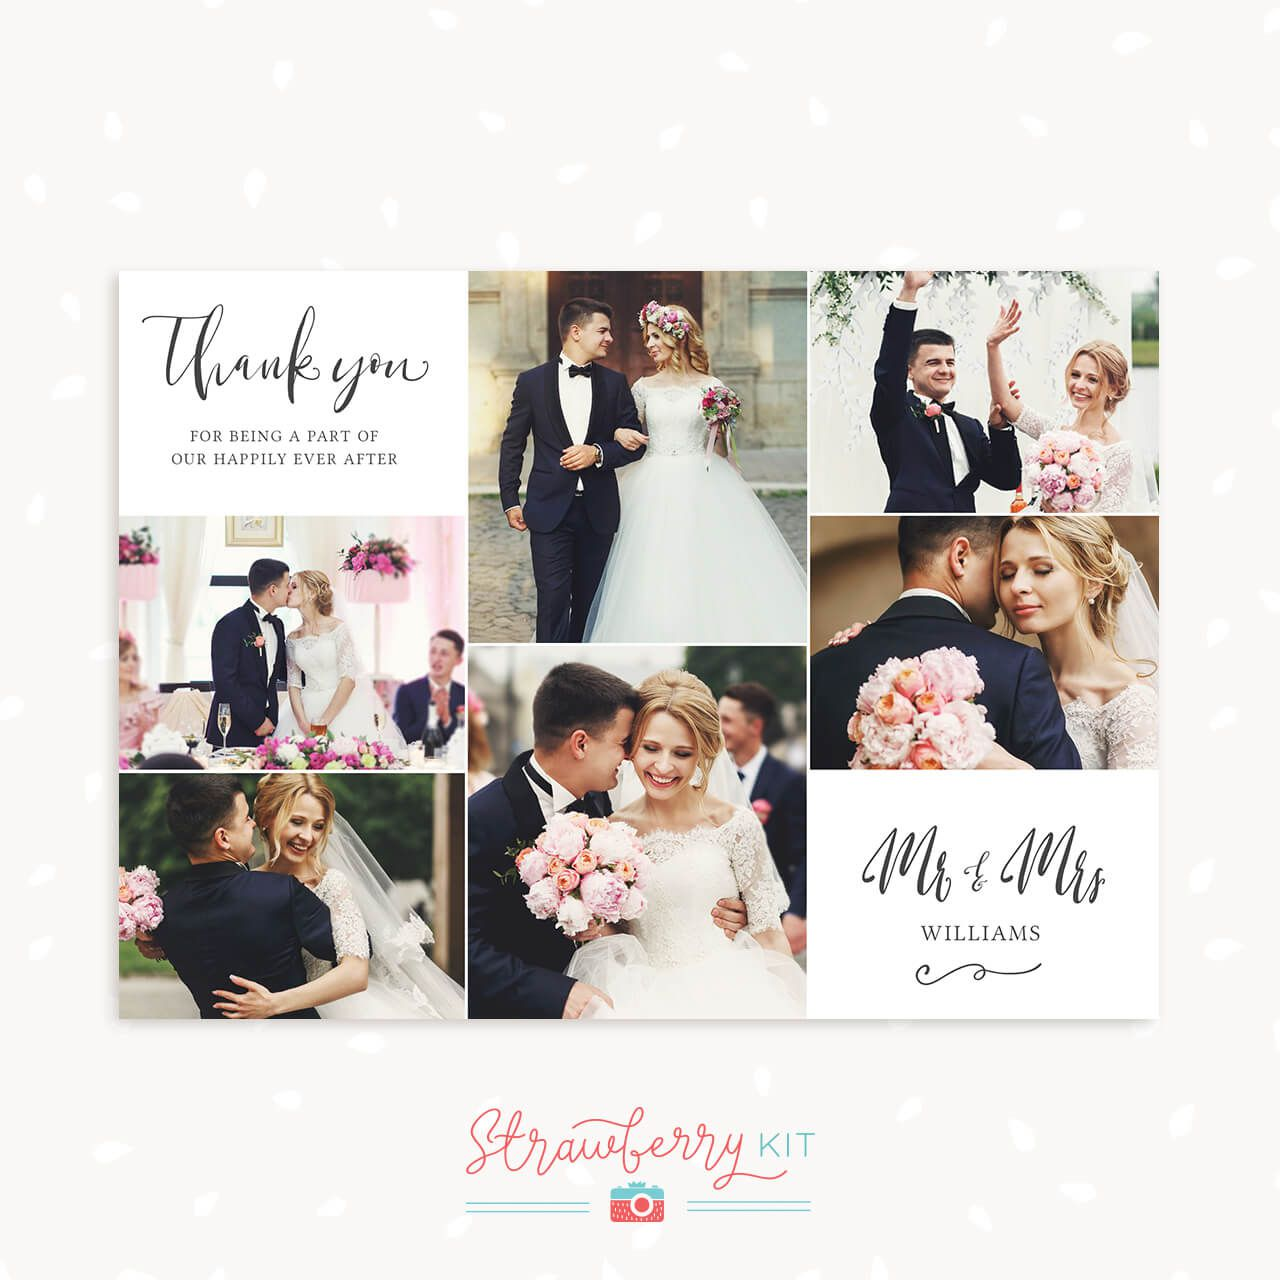 004 Amazing Wedding Thank You Card Templates. Highest Clarity  Template Etsy Word PublisherFull